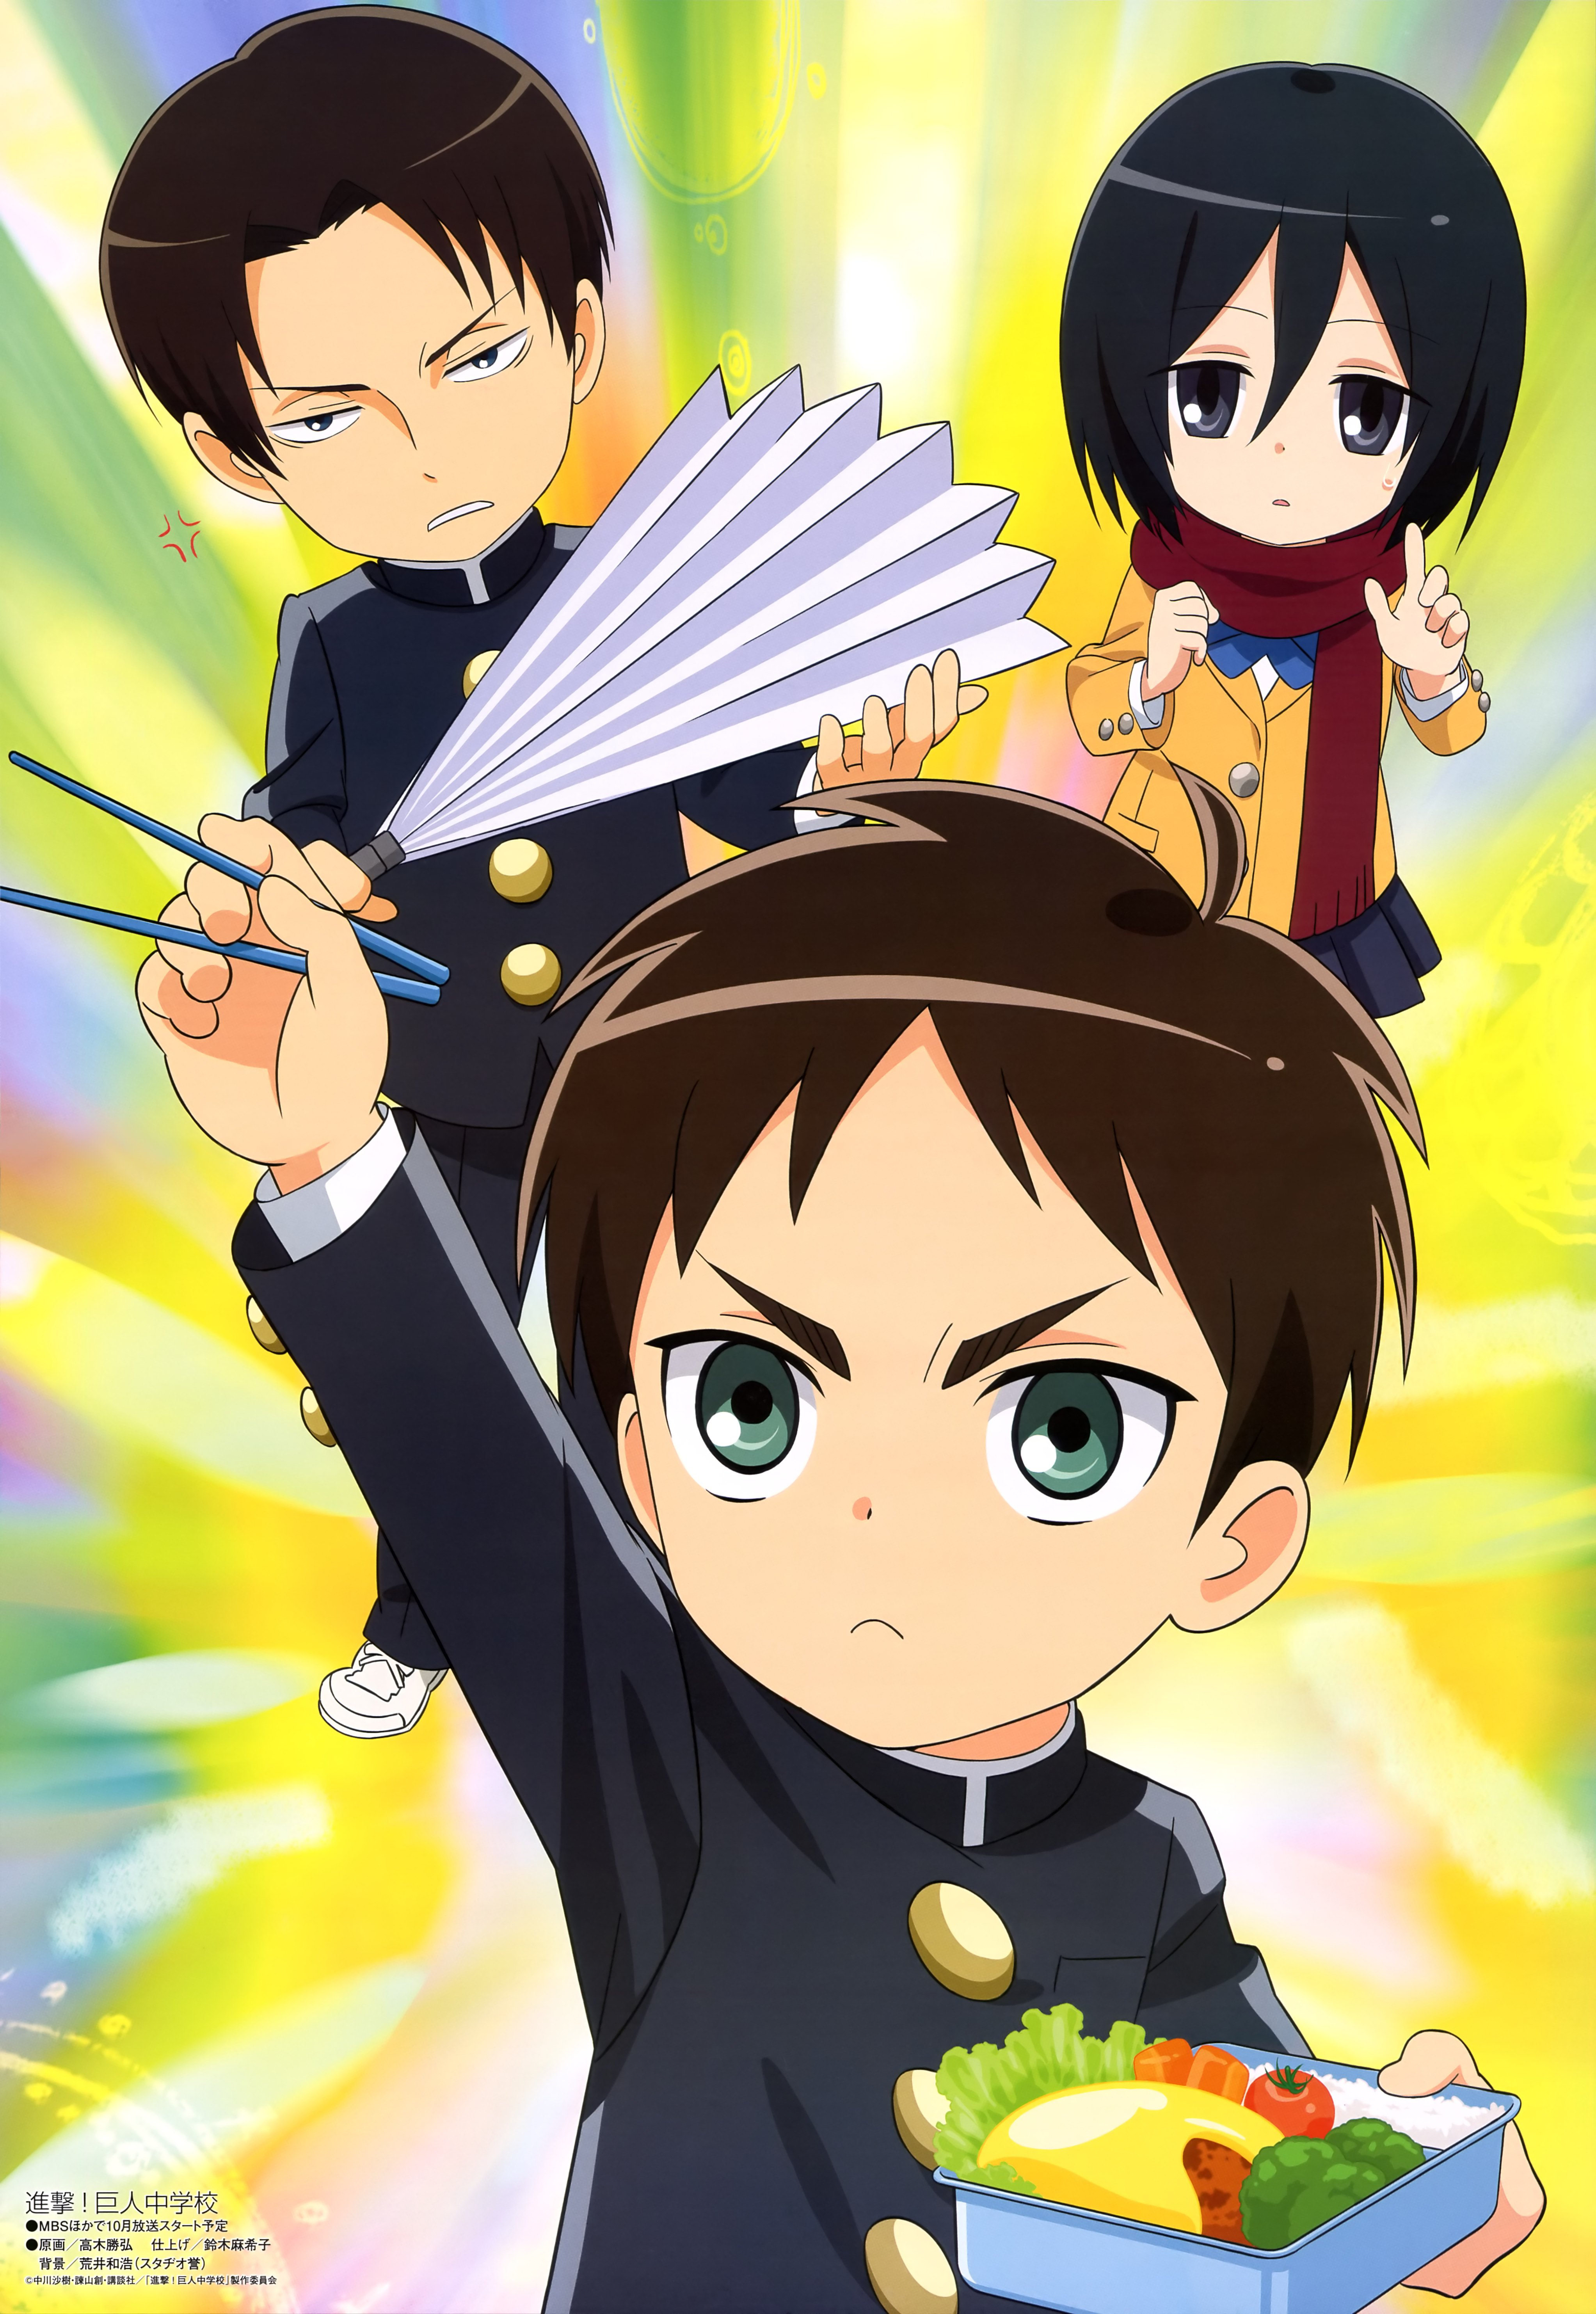 Anime Season Fall 2015 Fans Perempuan Attack on Titan Junior High